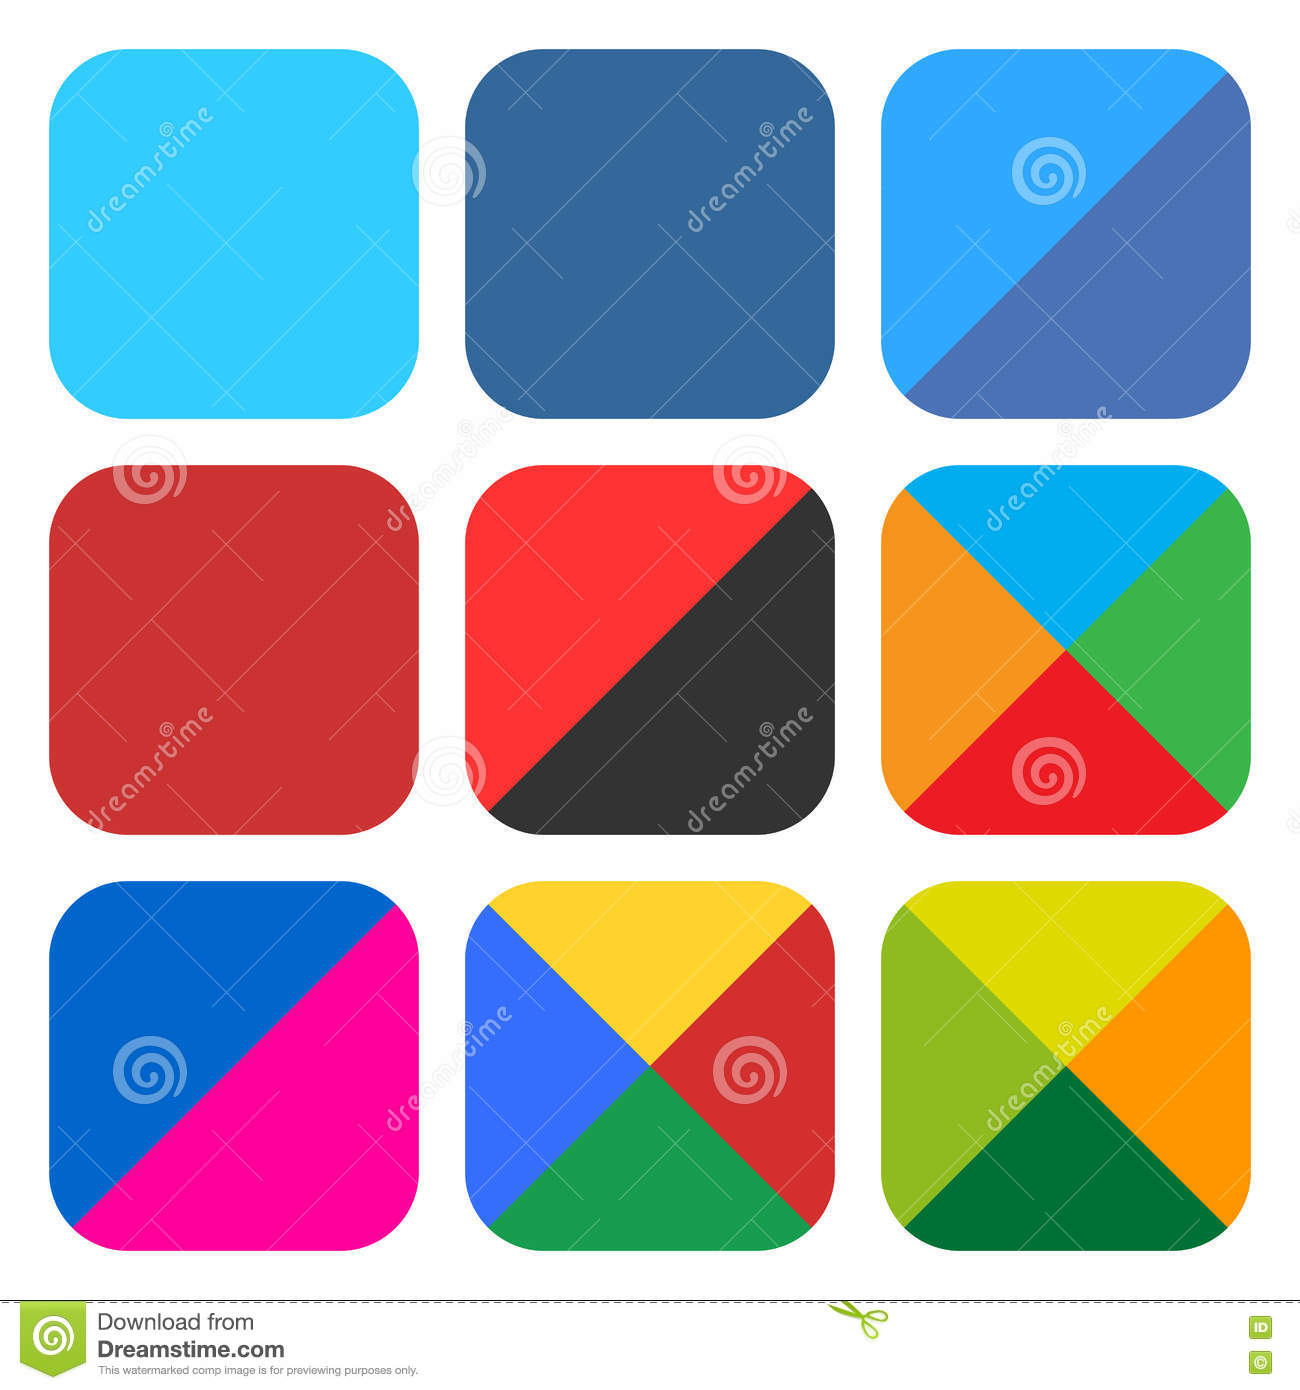 ca987de622 9 blank rounded square icon set. Popular color web button on white  background. Flat newest simple clean plain tidy solid style. Internet  design element save ...